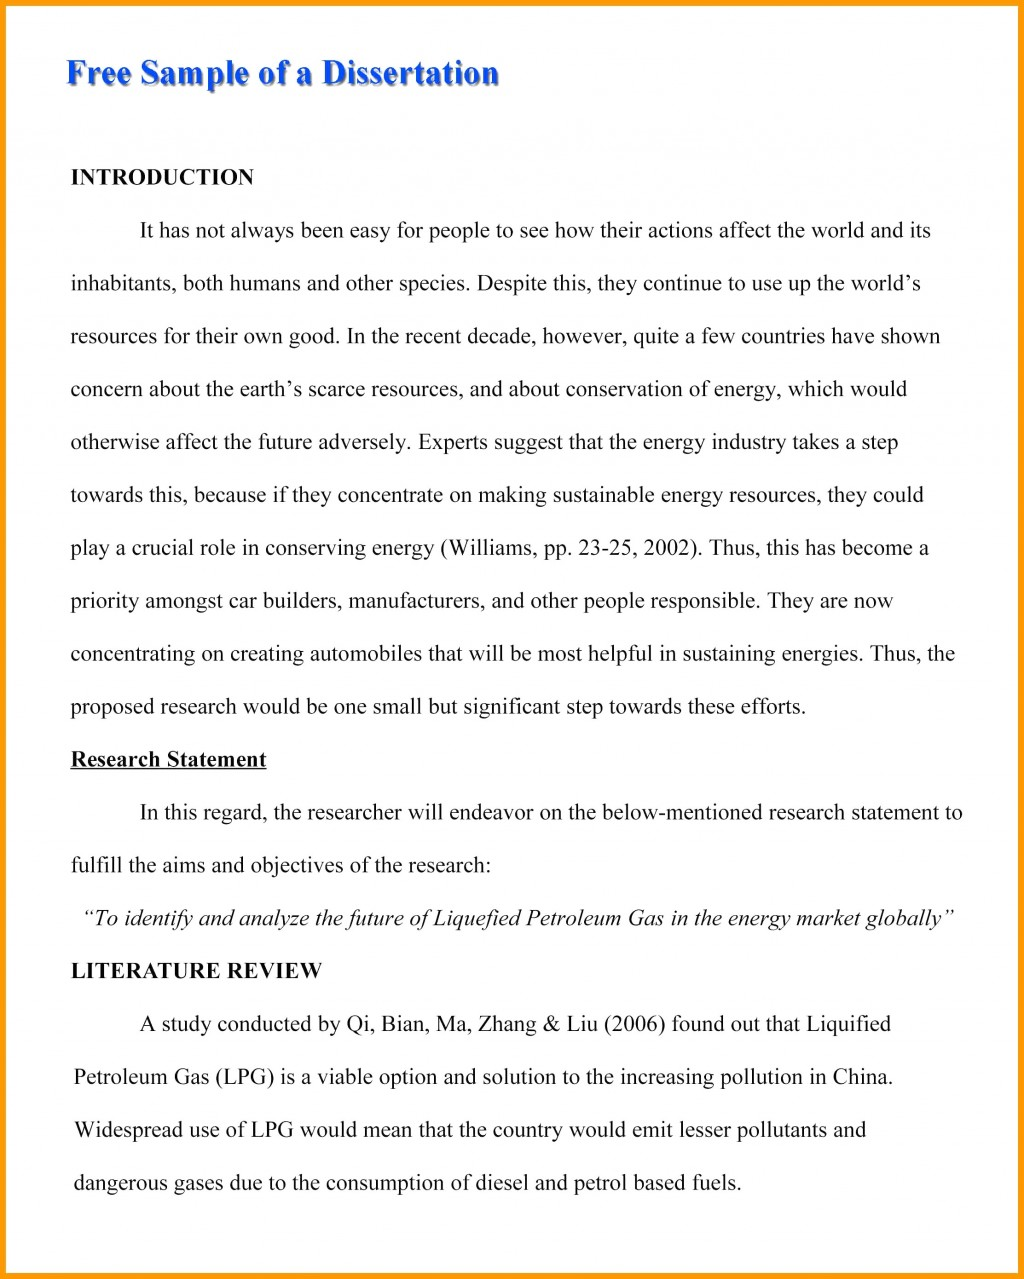 004 War On Drugs Research Paper Outline Filename Books Historical Pertaining To History Essay Impressive Rubric Middle School Topics Before 1500 Large